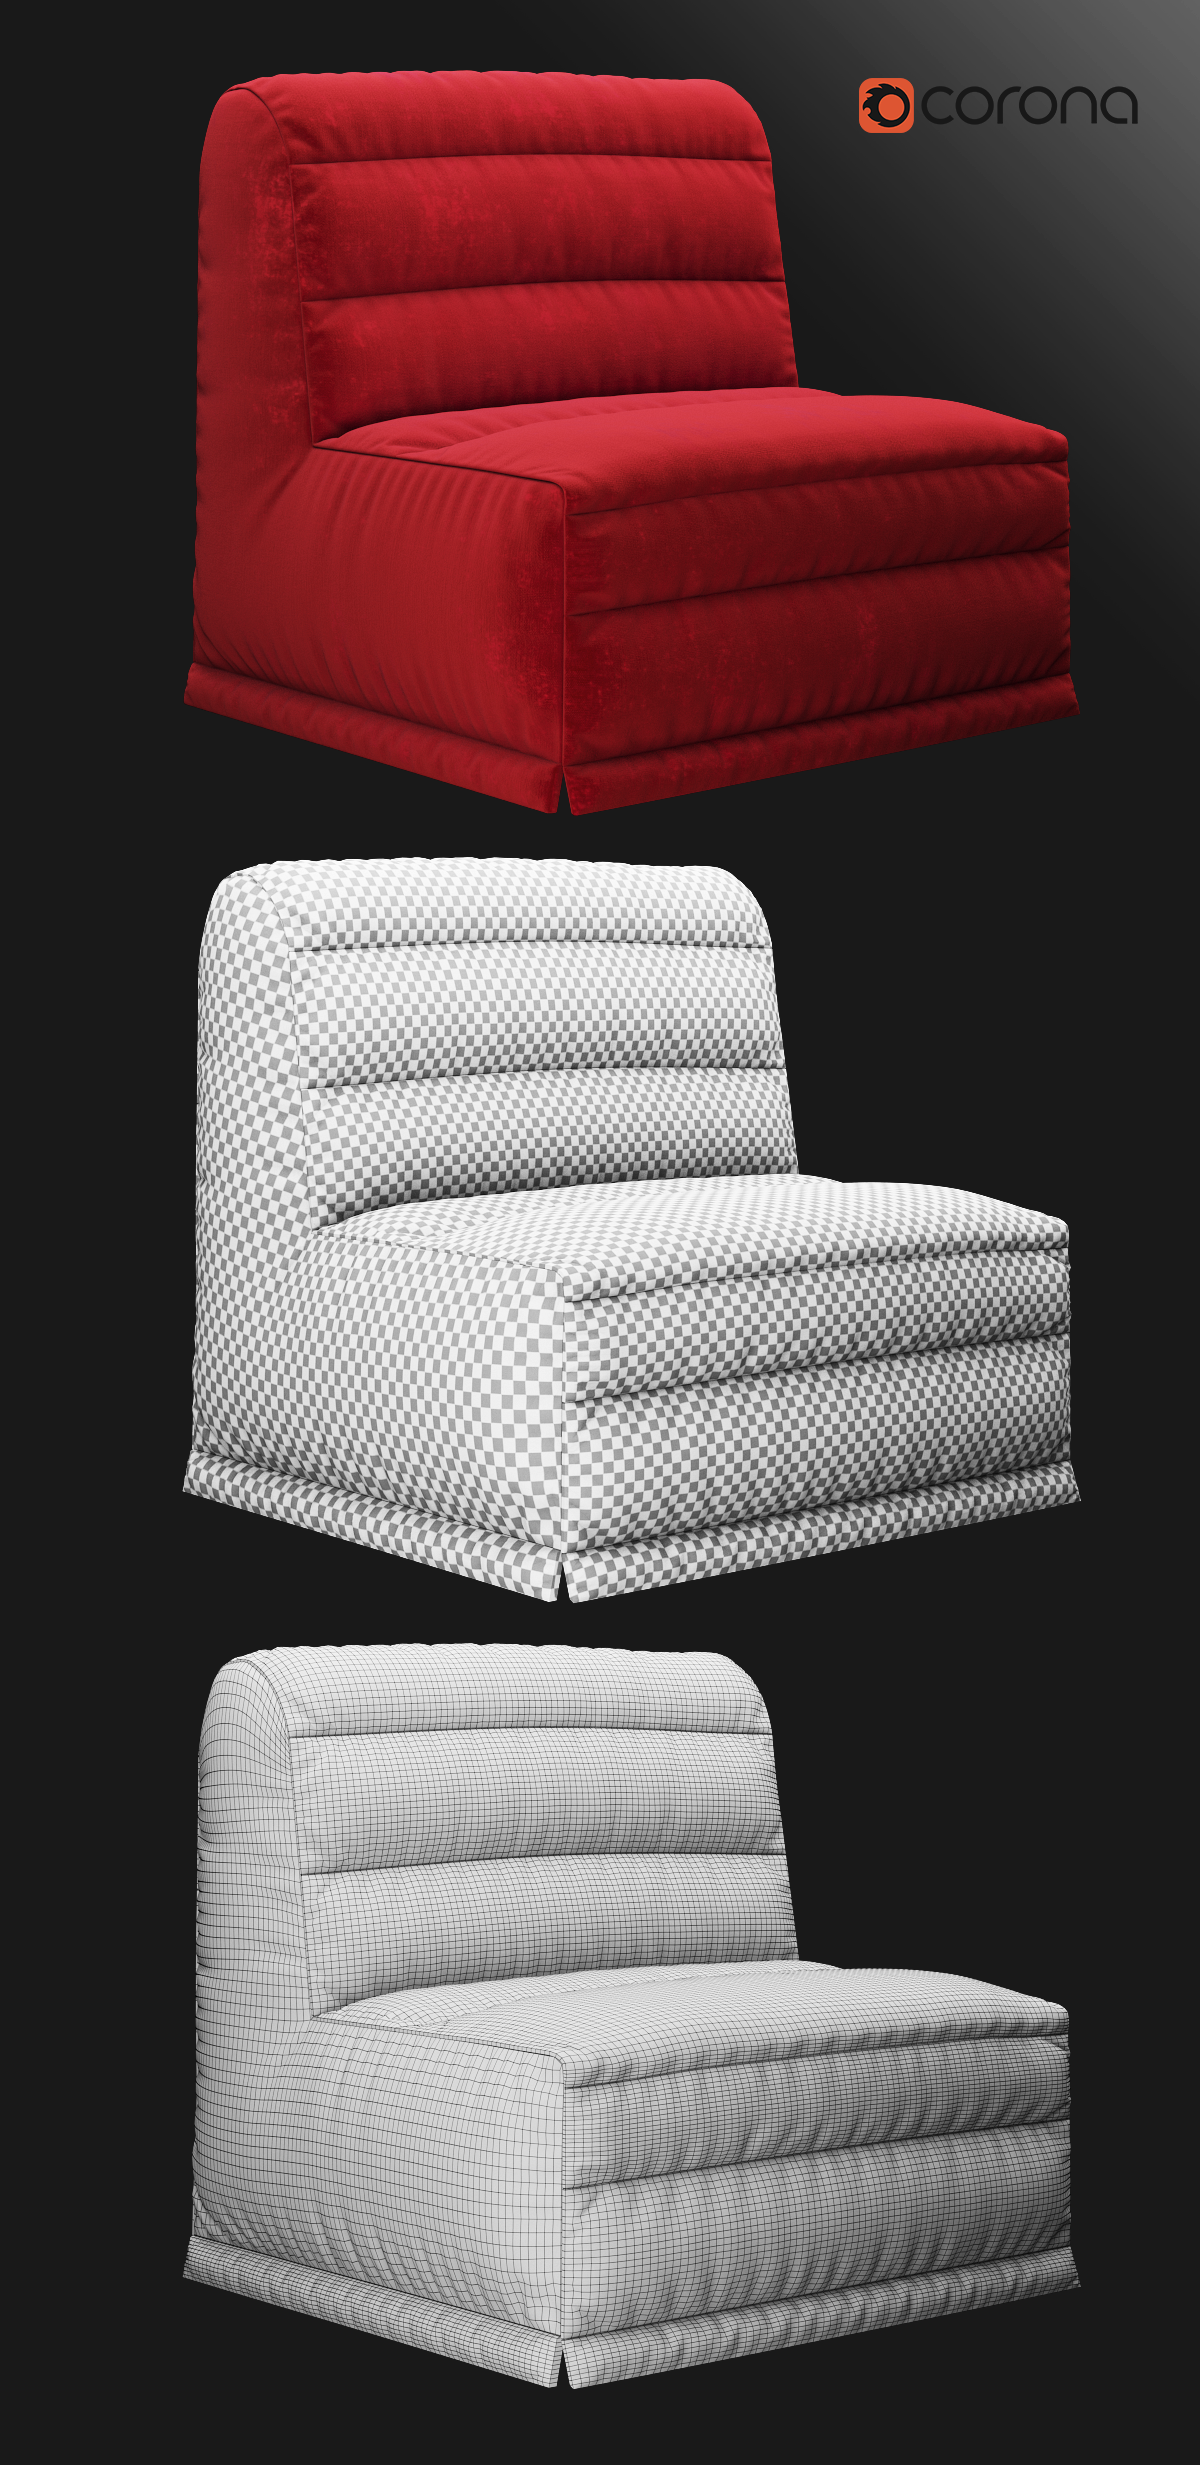 Velour sofa bed by rnax 3docean for Velour divan beds